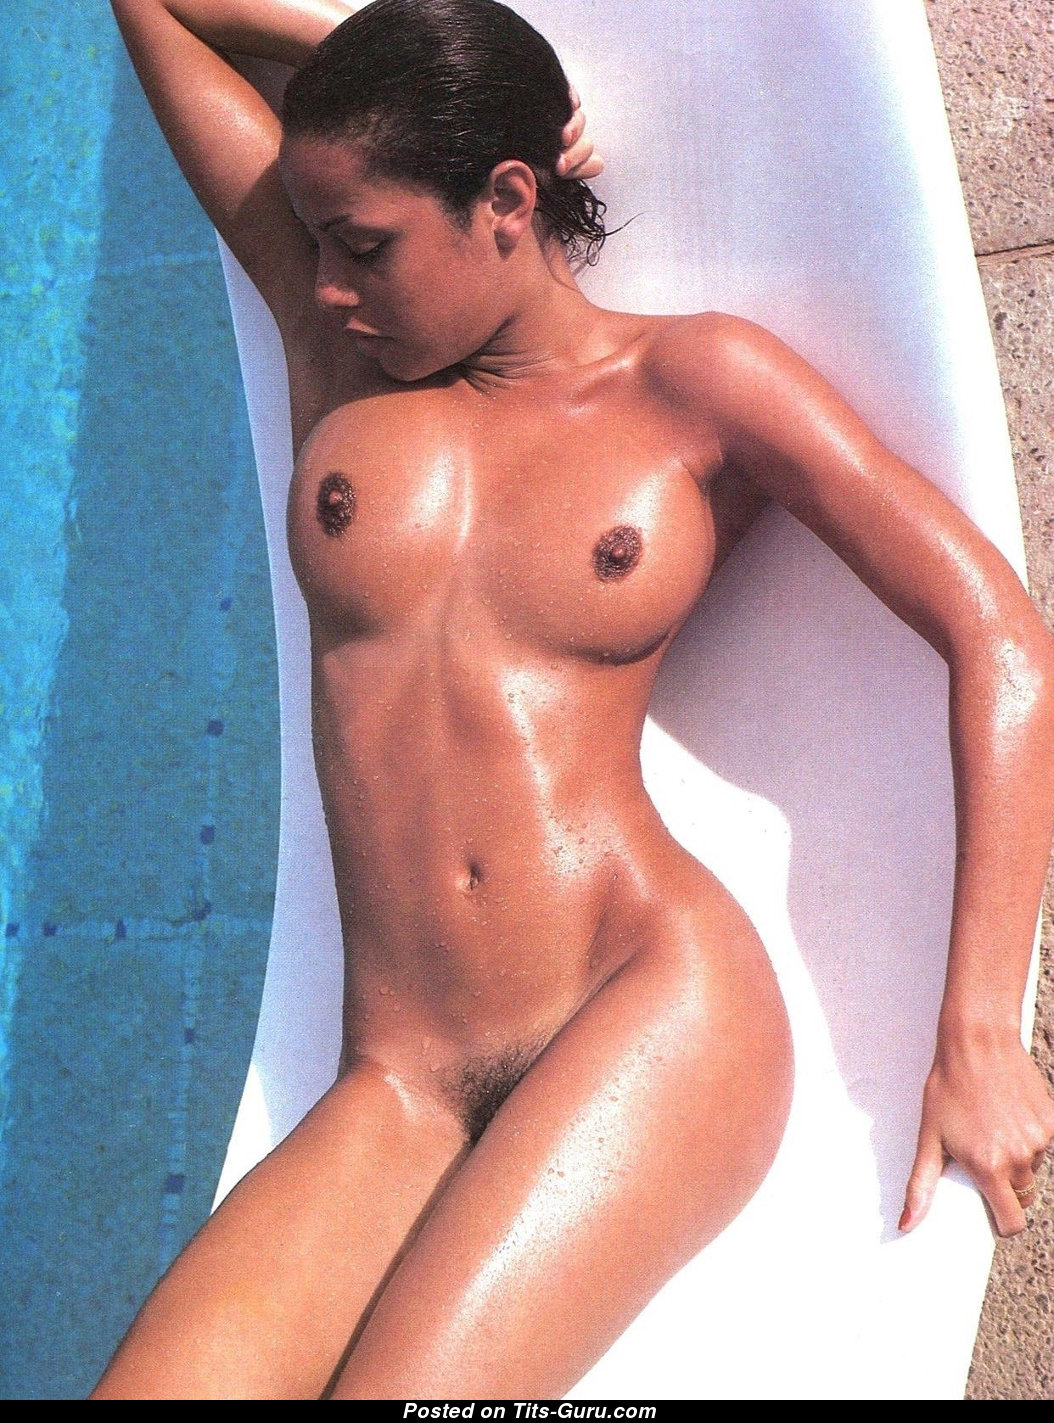 Angelina Jolie Nua angelina jolie nude 🌶️ 16 pics & gifs of hot naked boobs